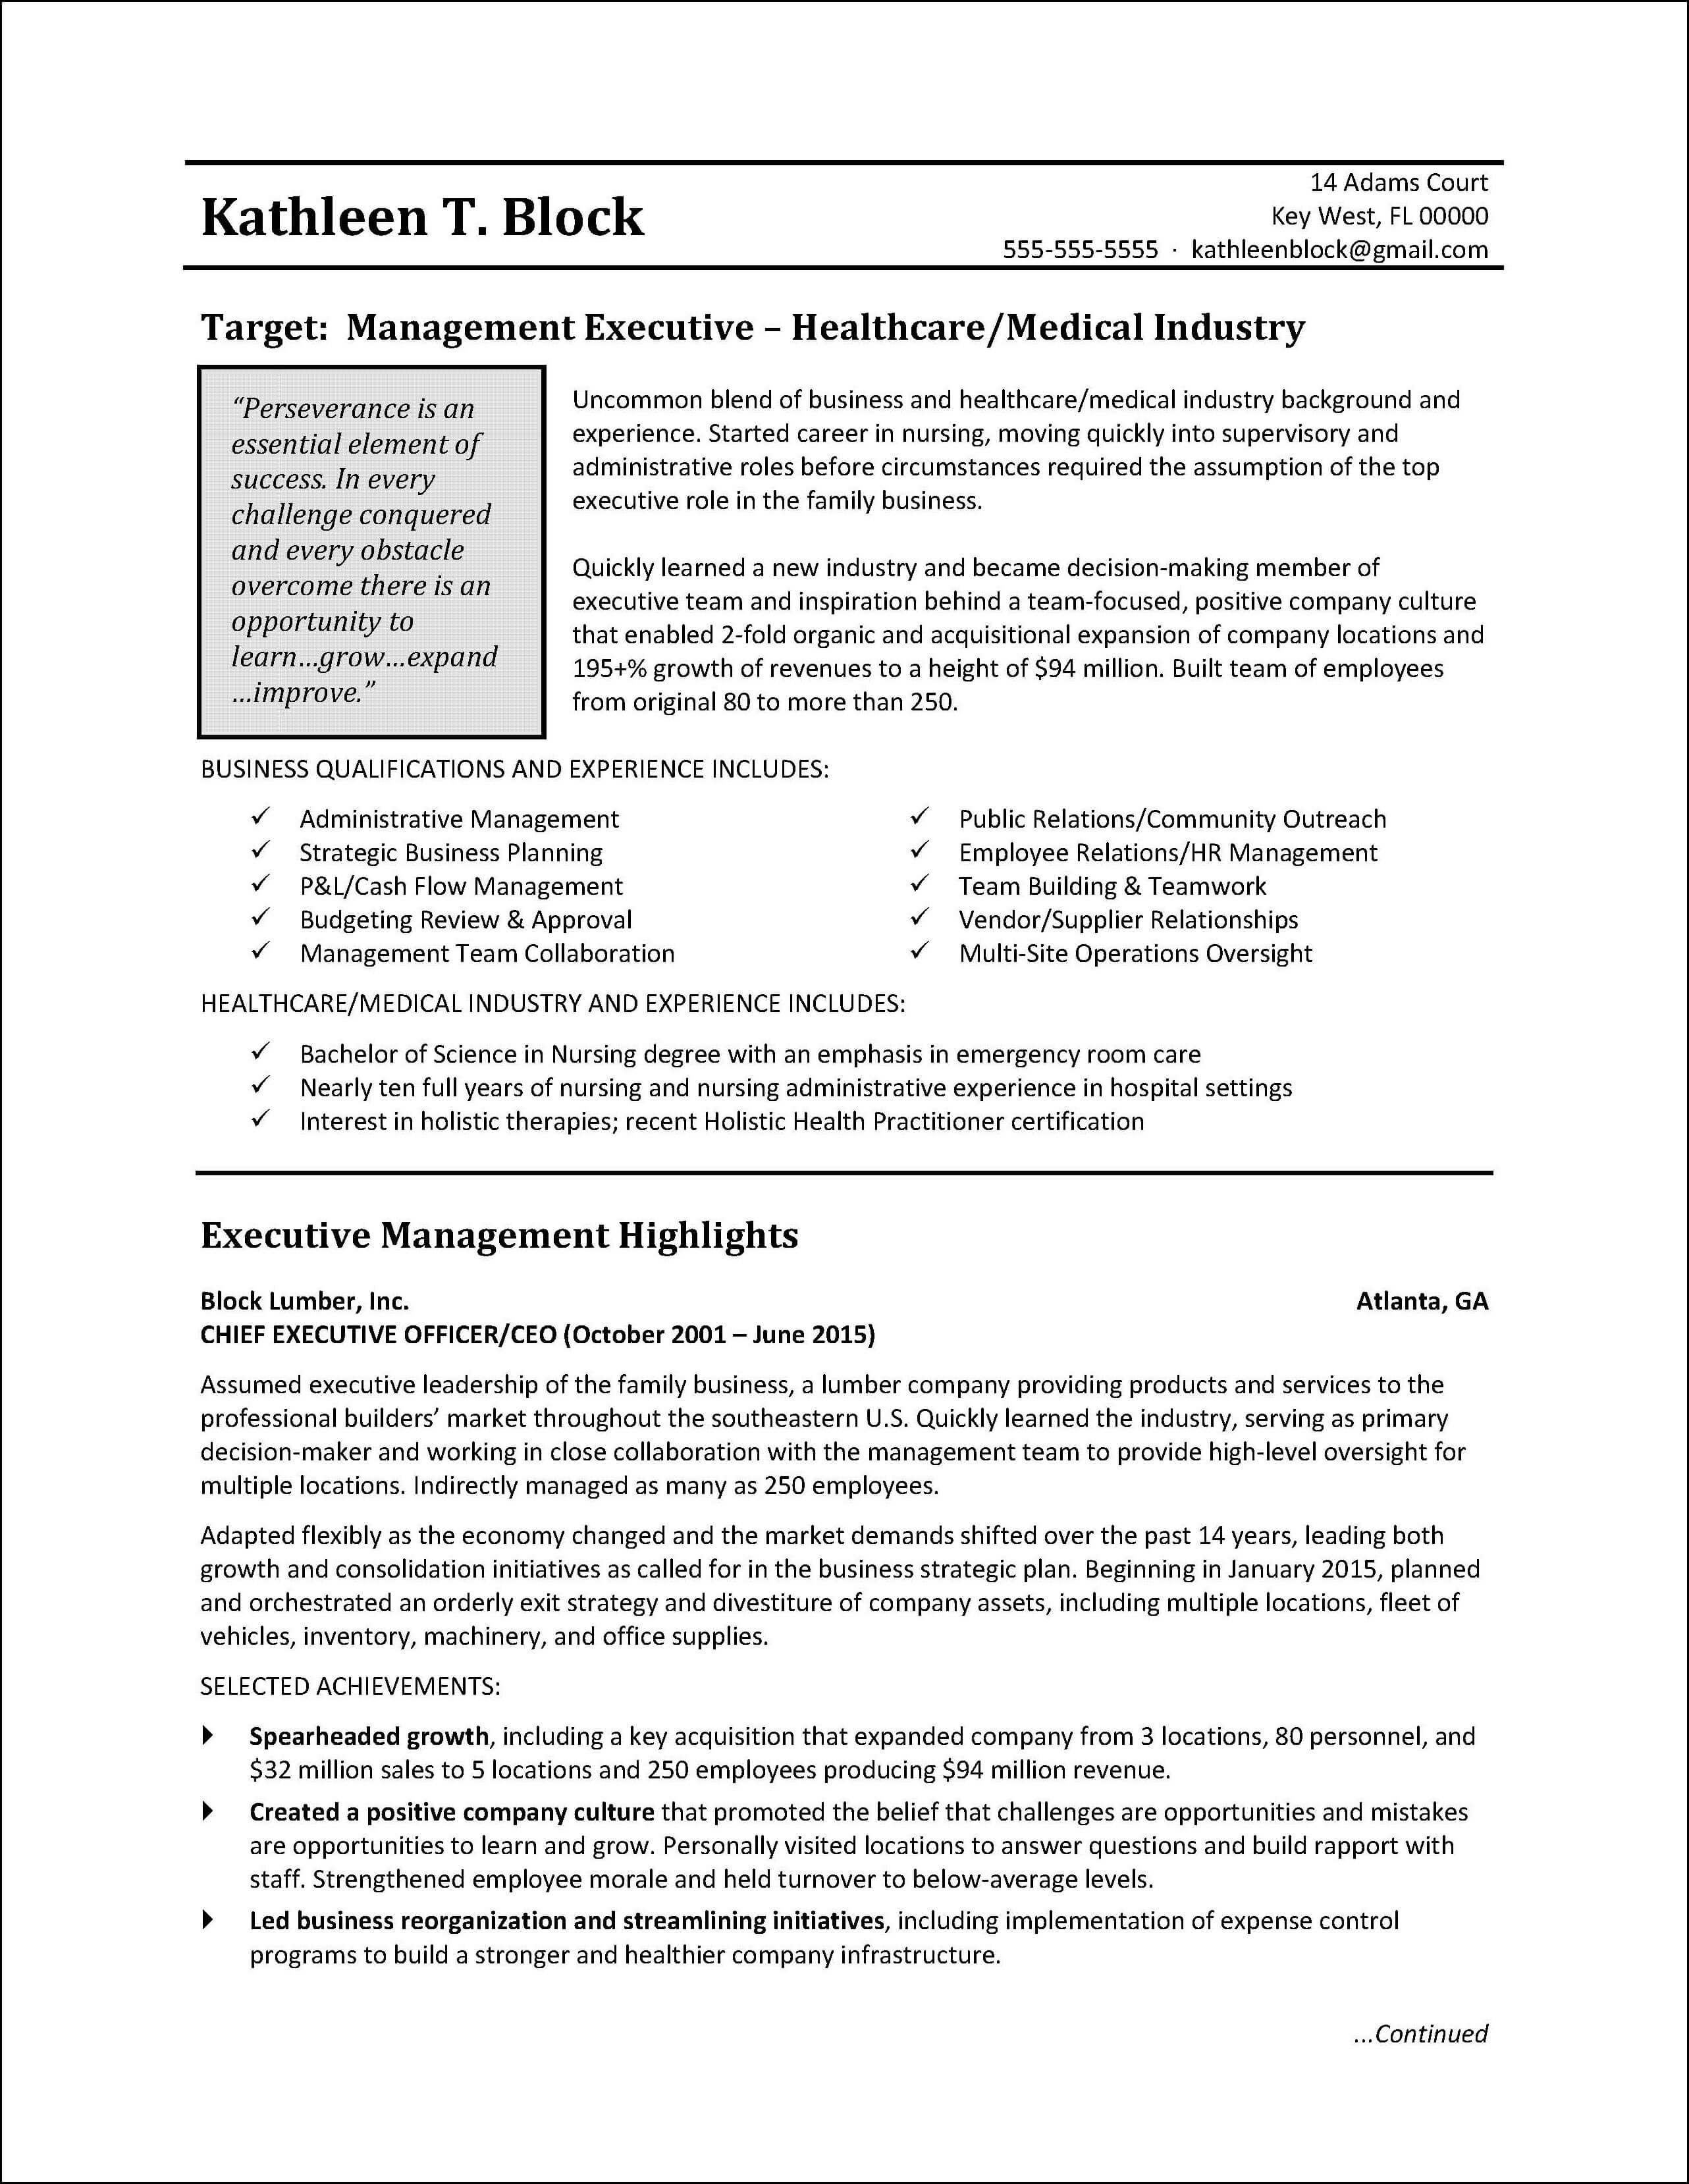 Own Own Business Resume - Opinion of experts | Baseball | Pinterest